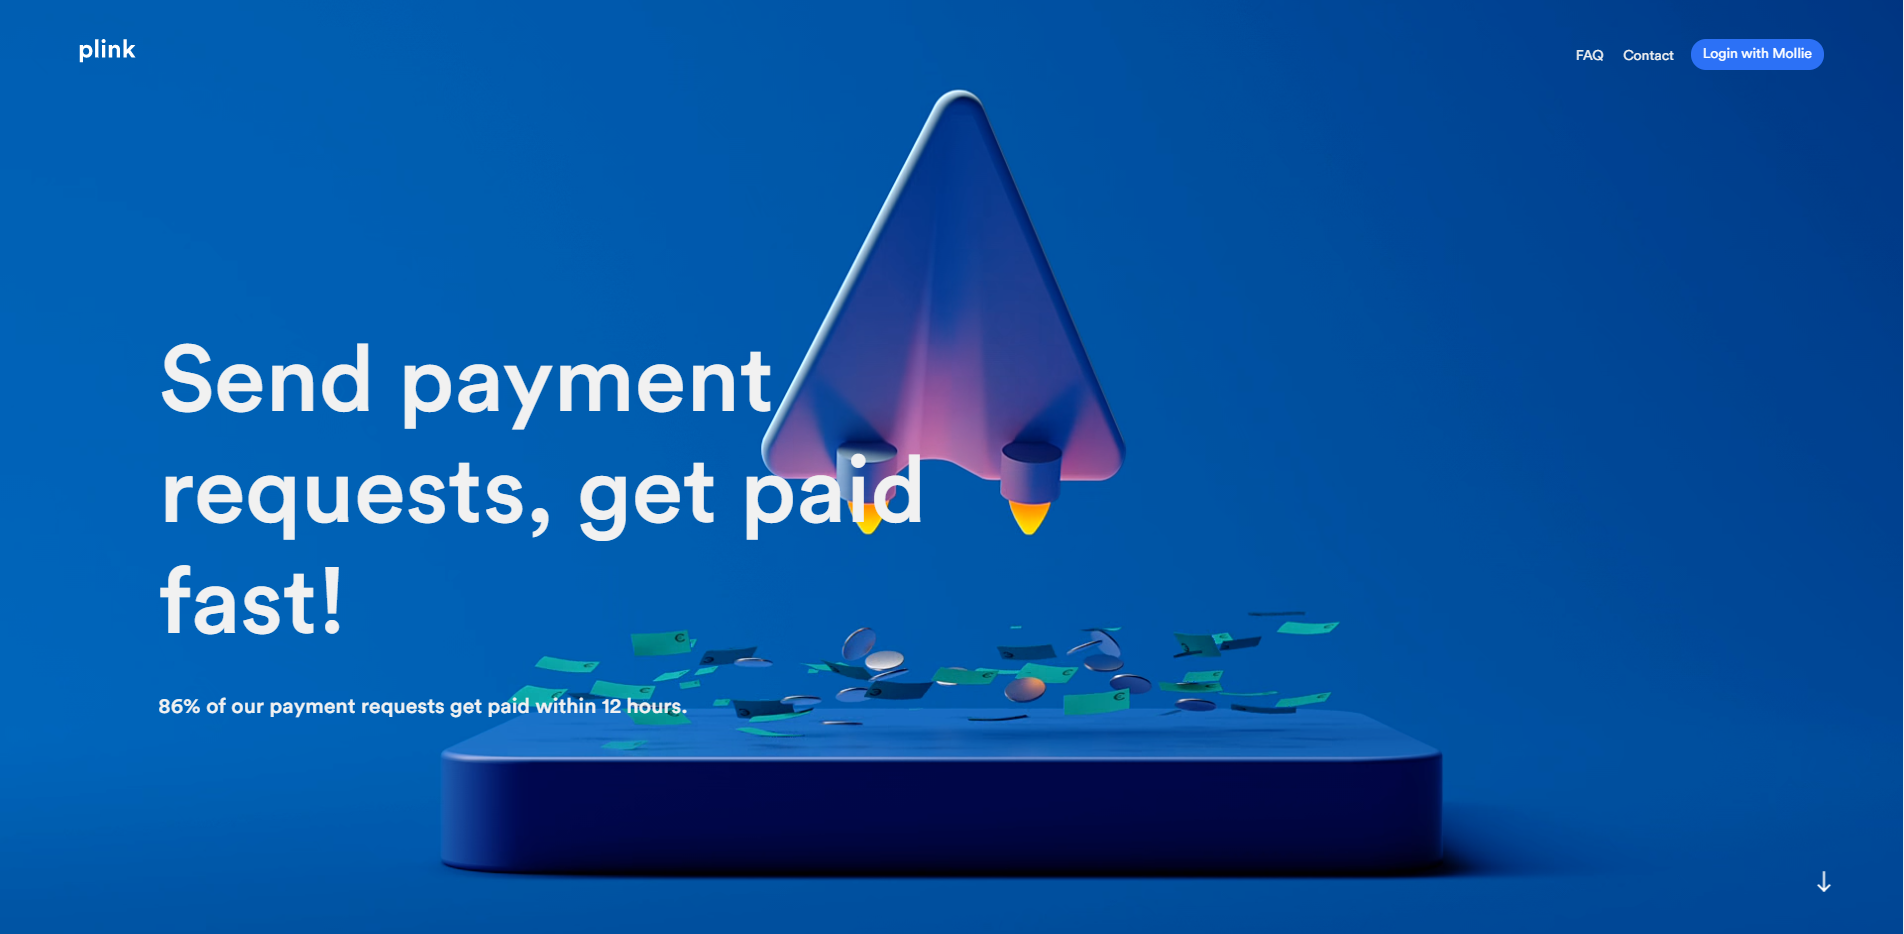 Plink - Send payment requests, get paid fast!